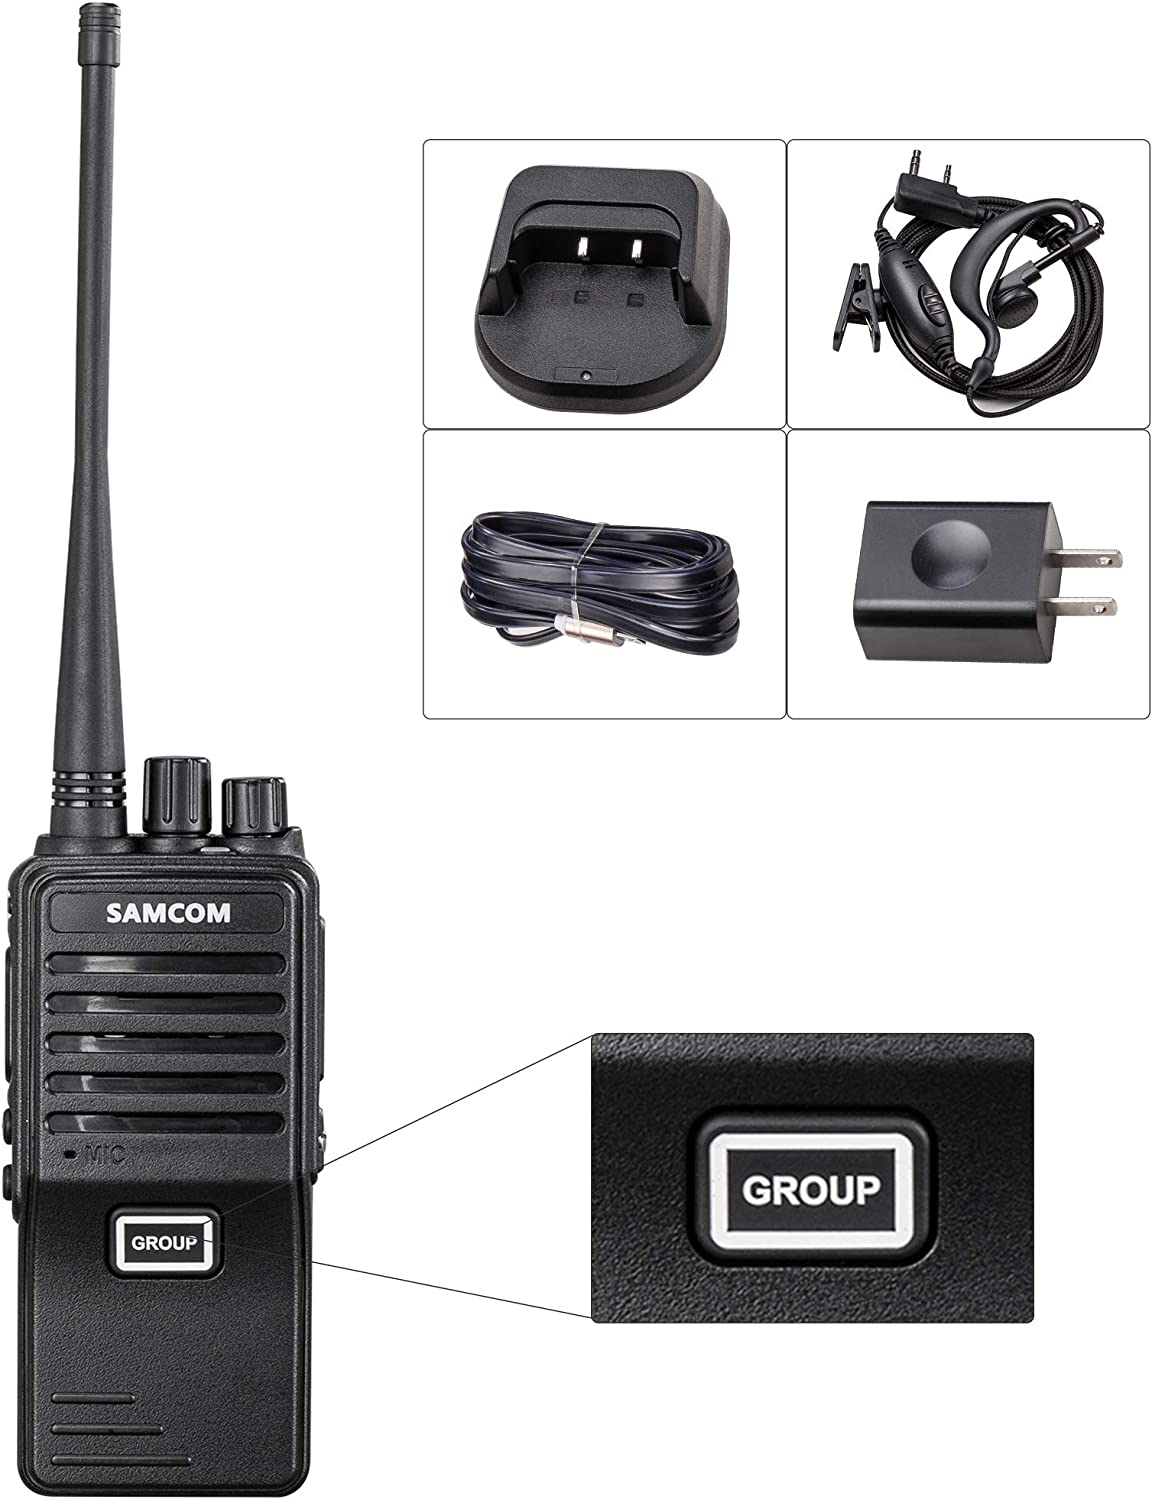 New 2 Set 2 Way Radio Long Range Samcom FPCN10A GMRS Walkie Talkie 20 Channels